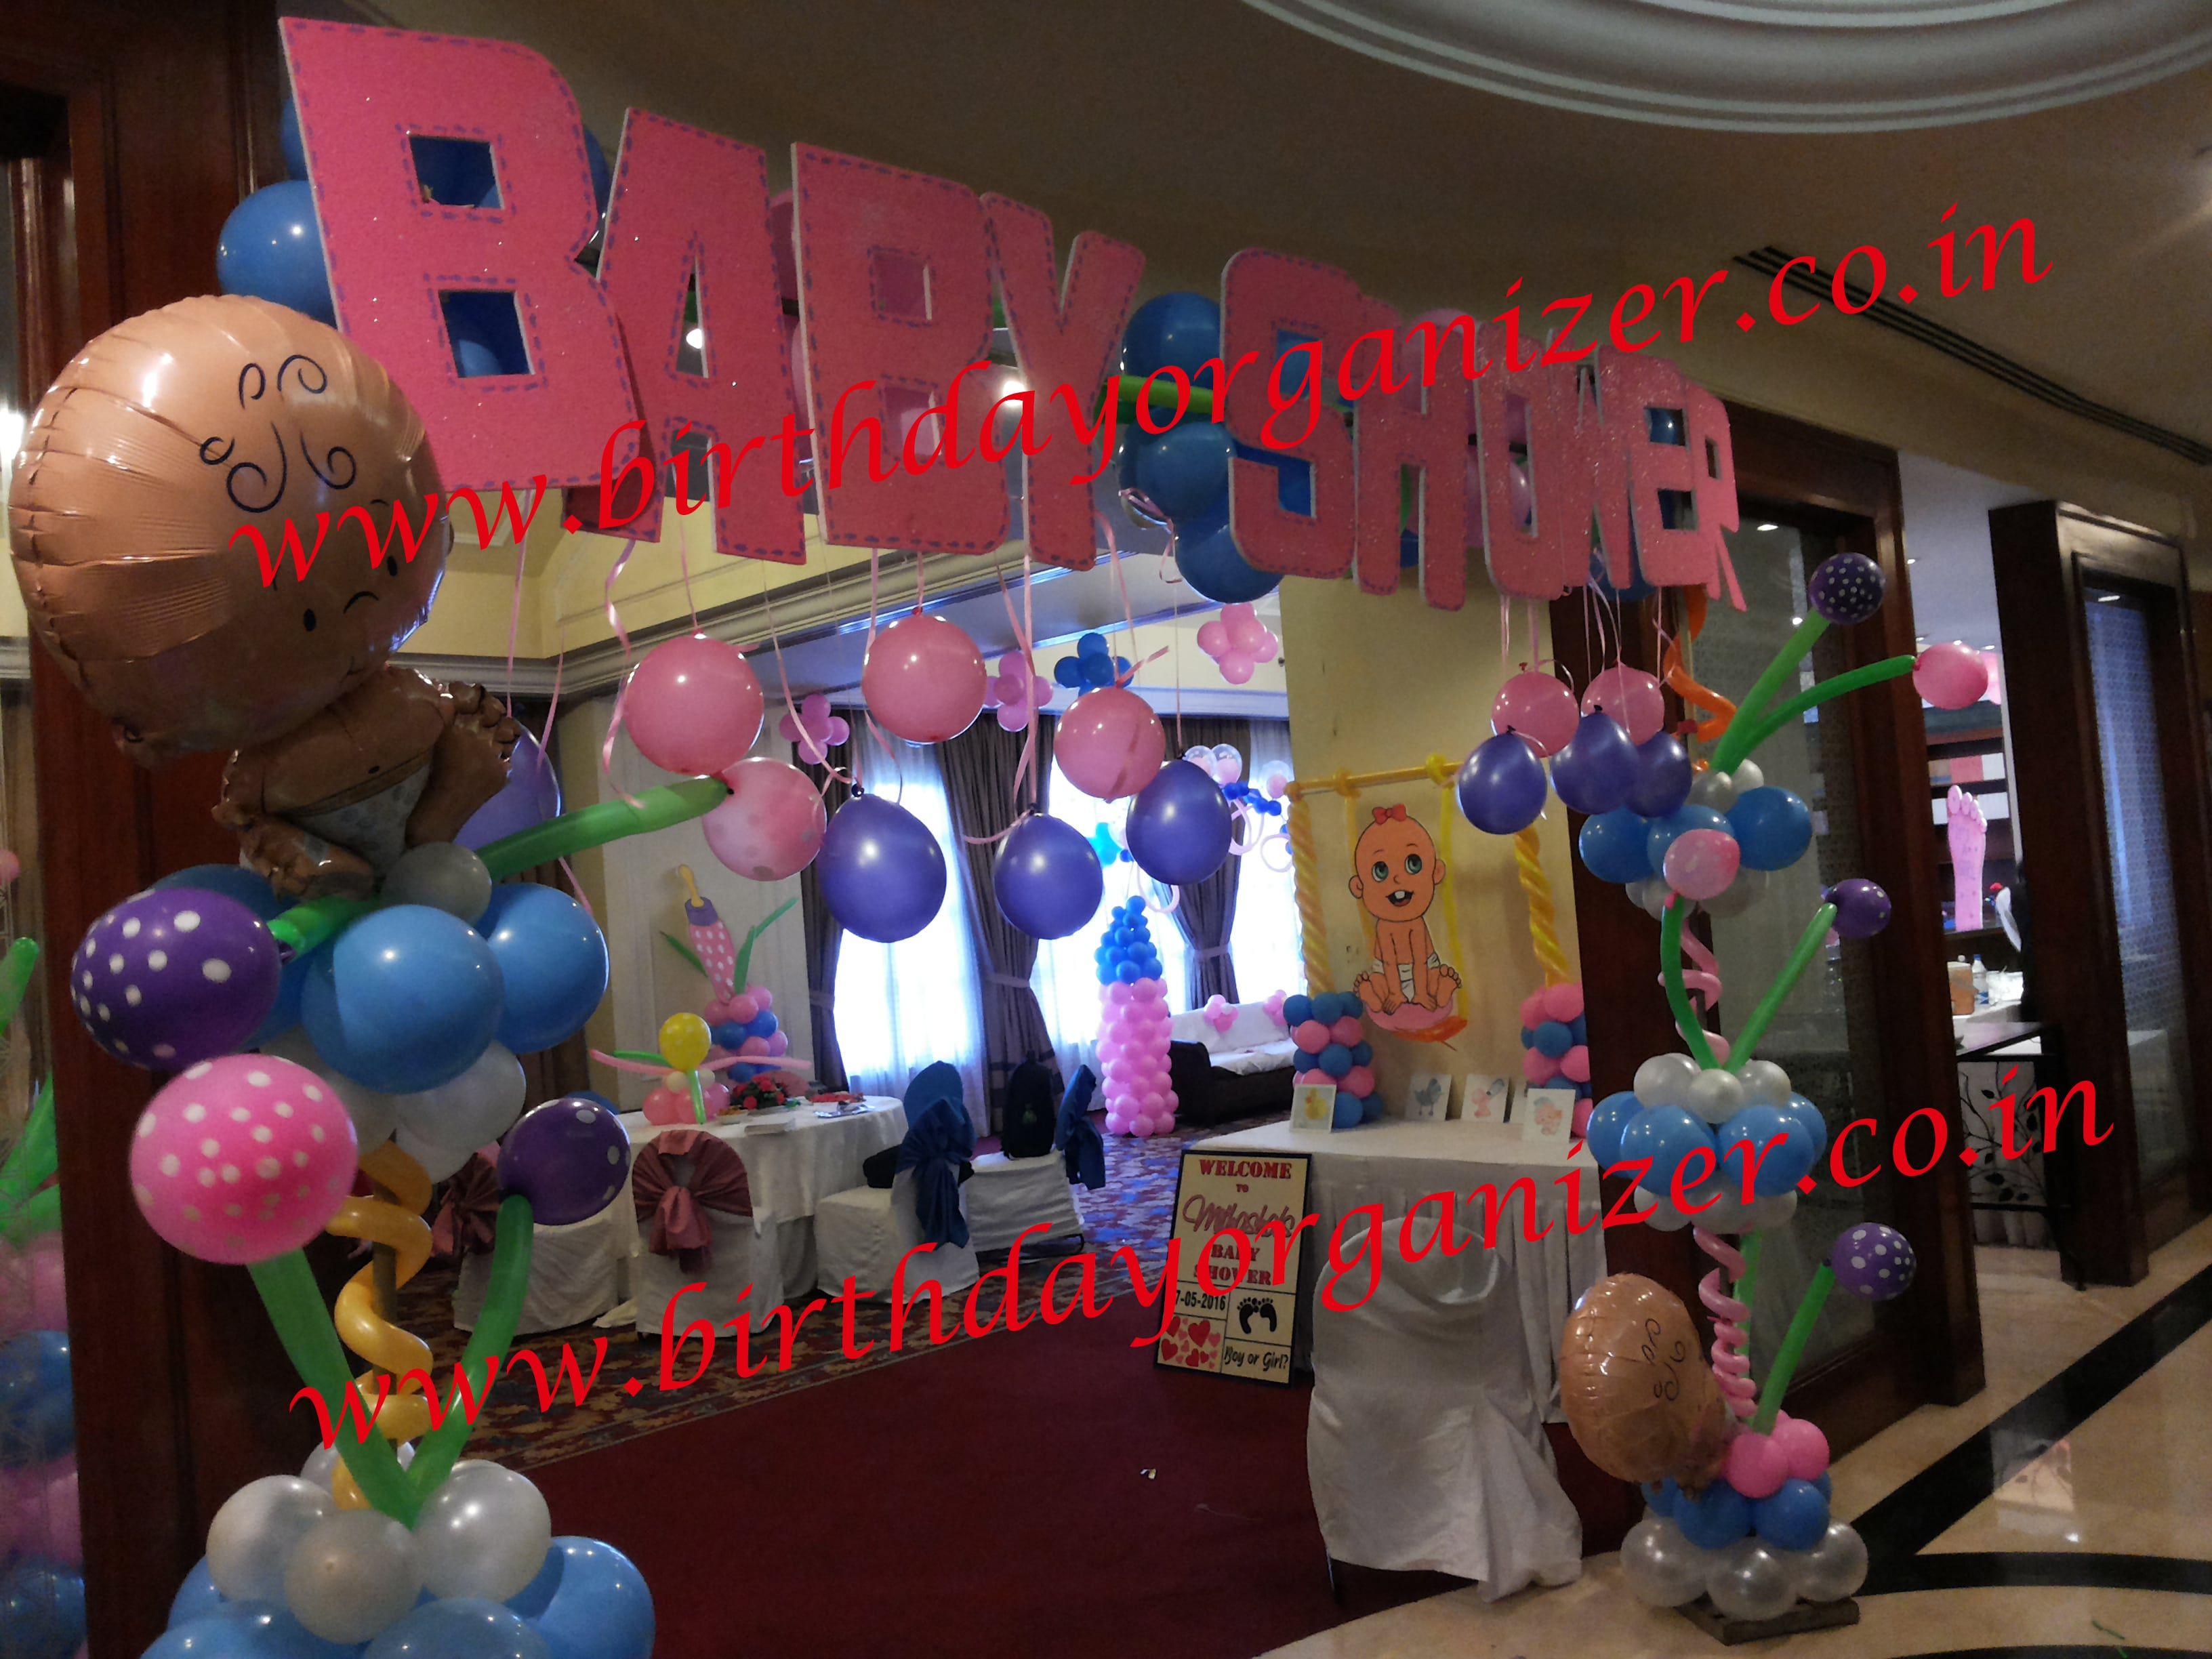 Baby shower theme party planner in delhi, Baby shower theme party planner in noida, Baby shower theme party planner in ncr, Baby shower theme party planner in gurgaon